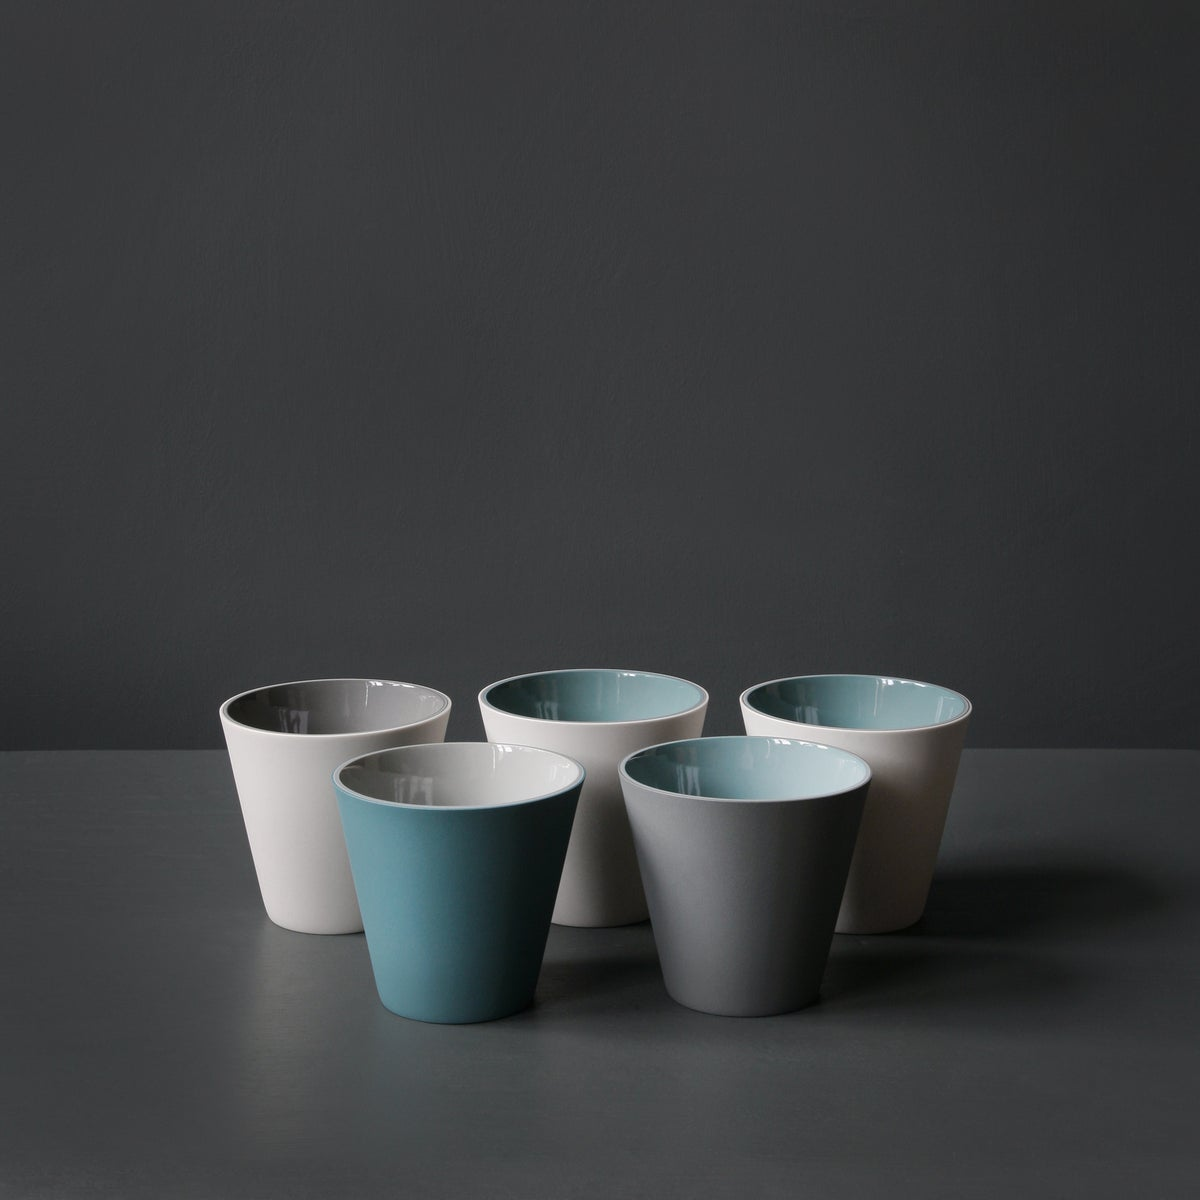 Image of Tapered Cups by Jill Shaddock.